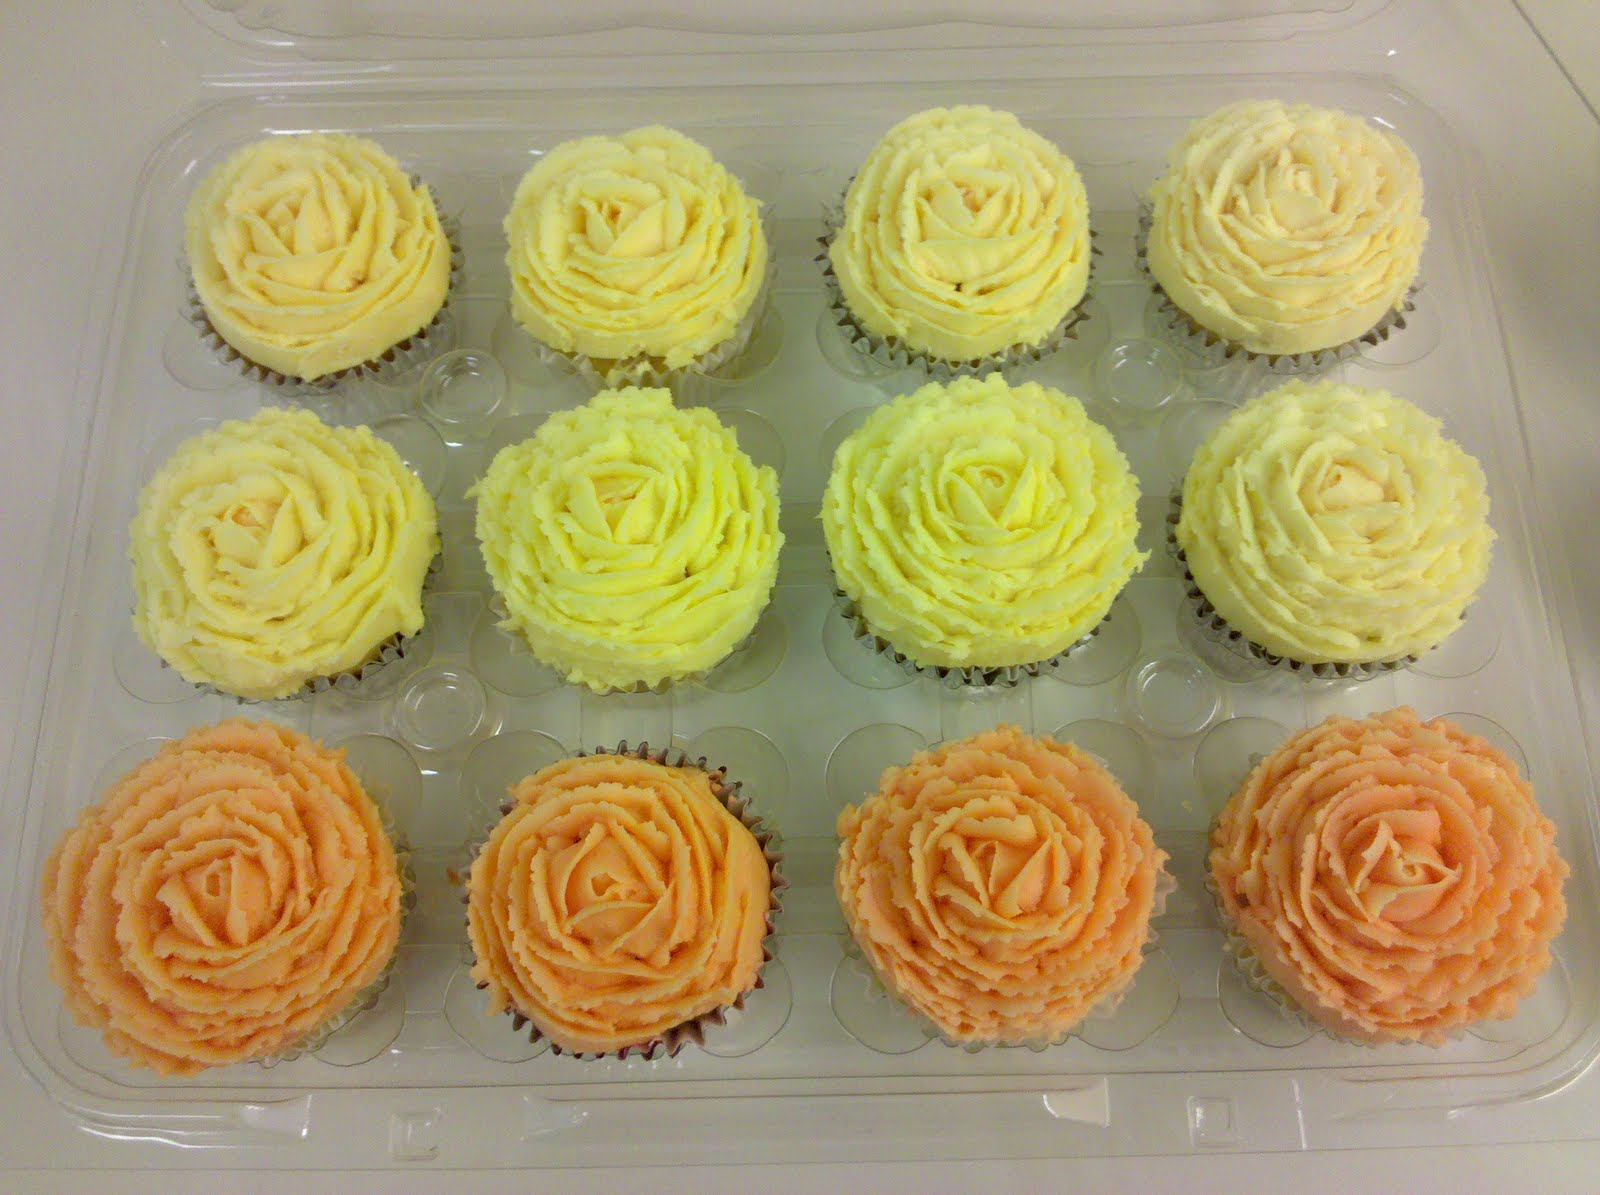 Edible mothers day gifts cupcakes miggies art world for Homemade edible mother s day gifts